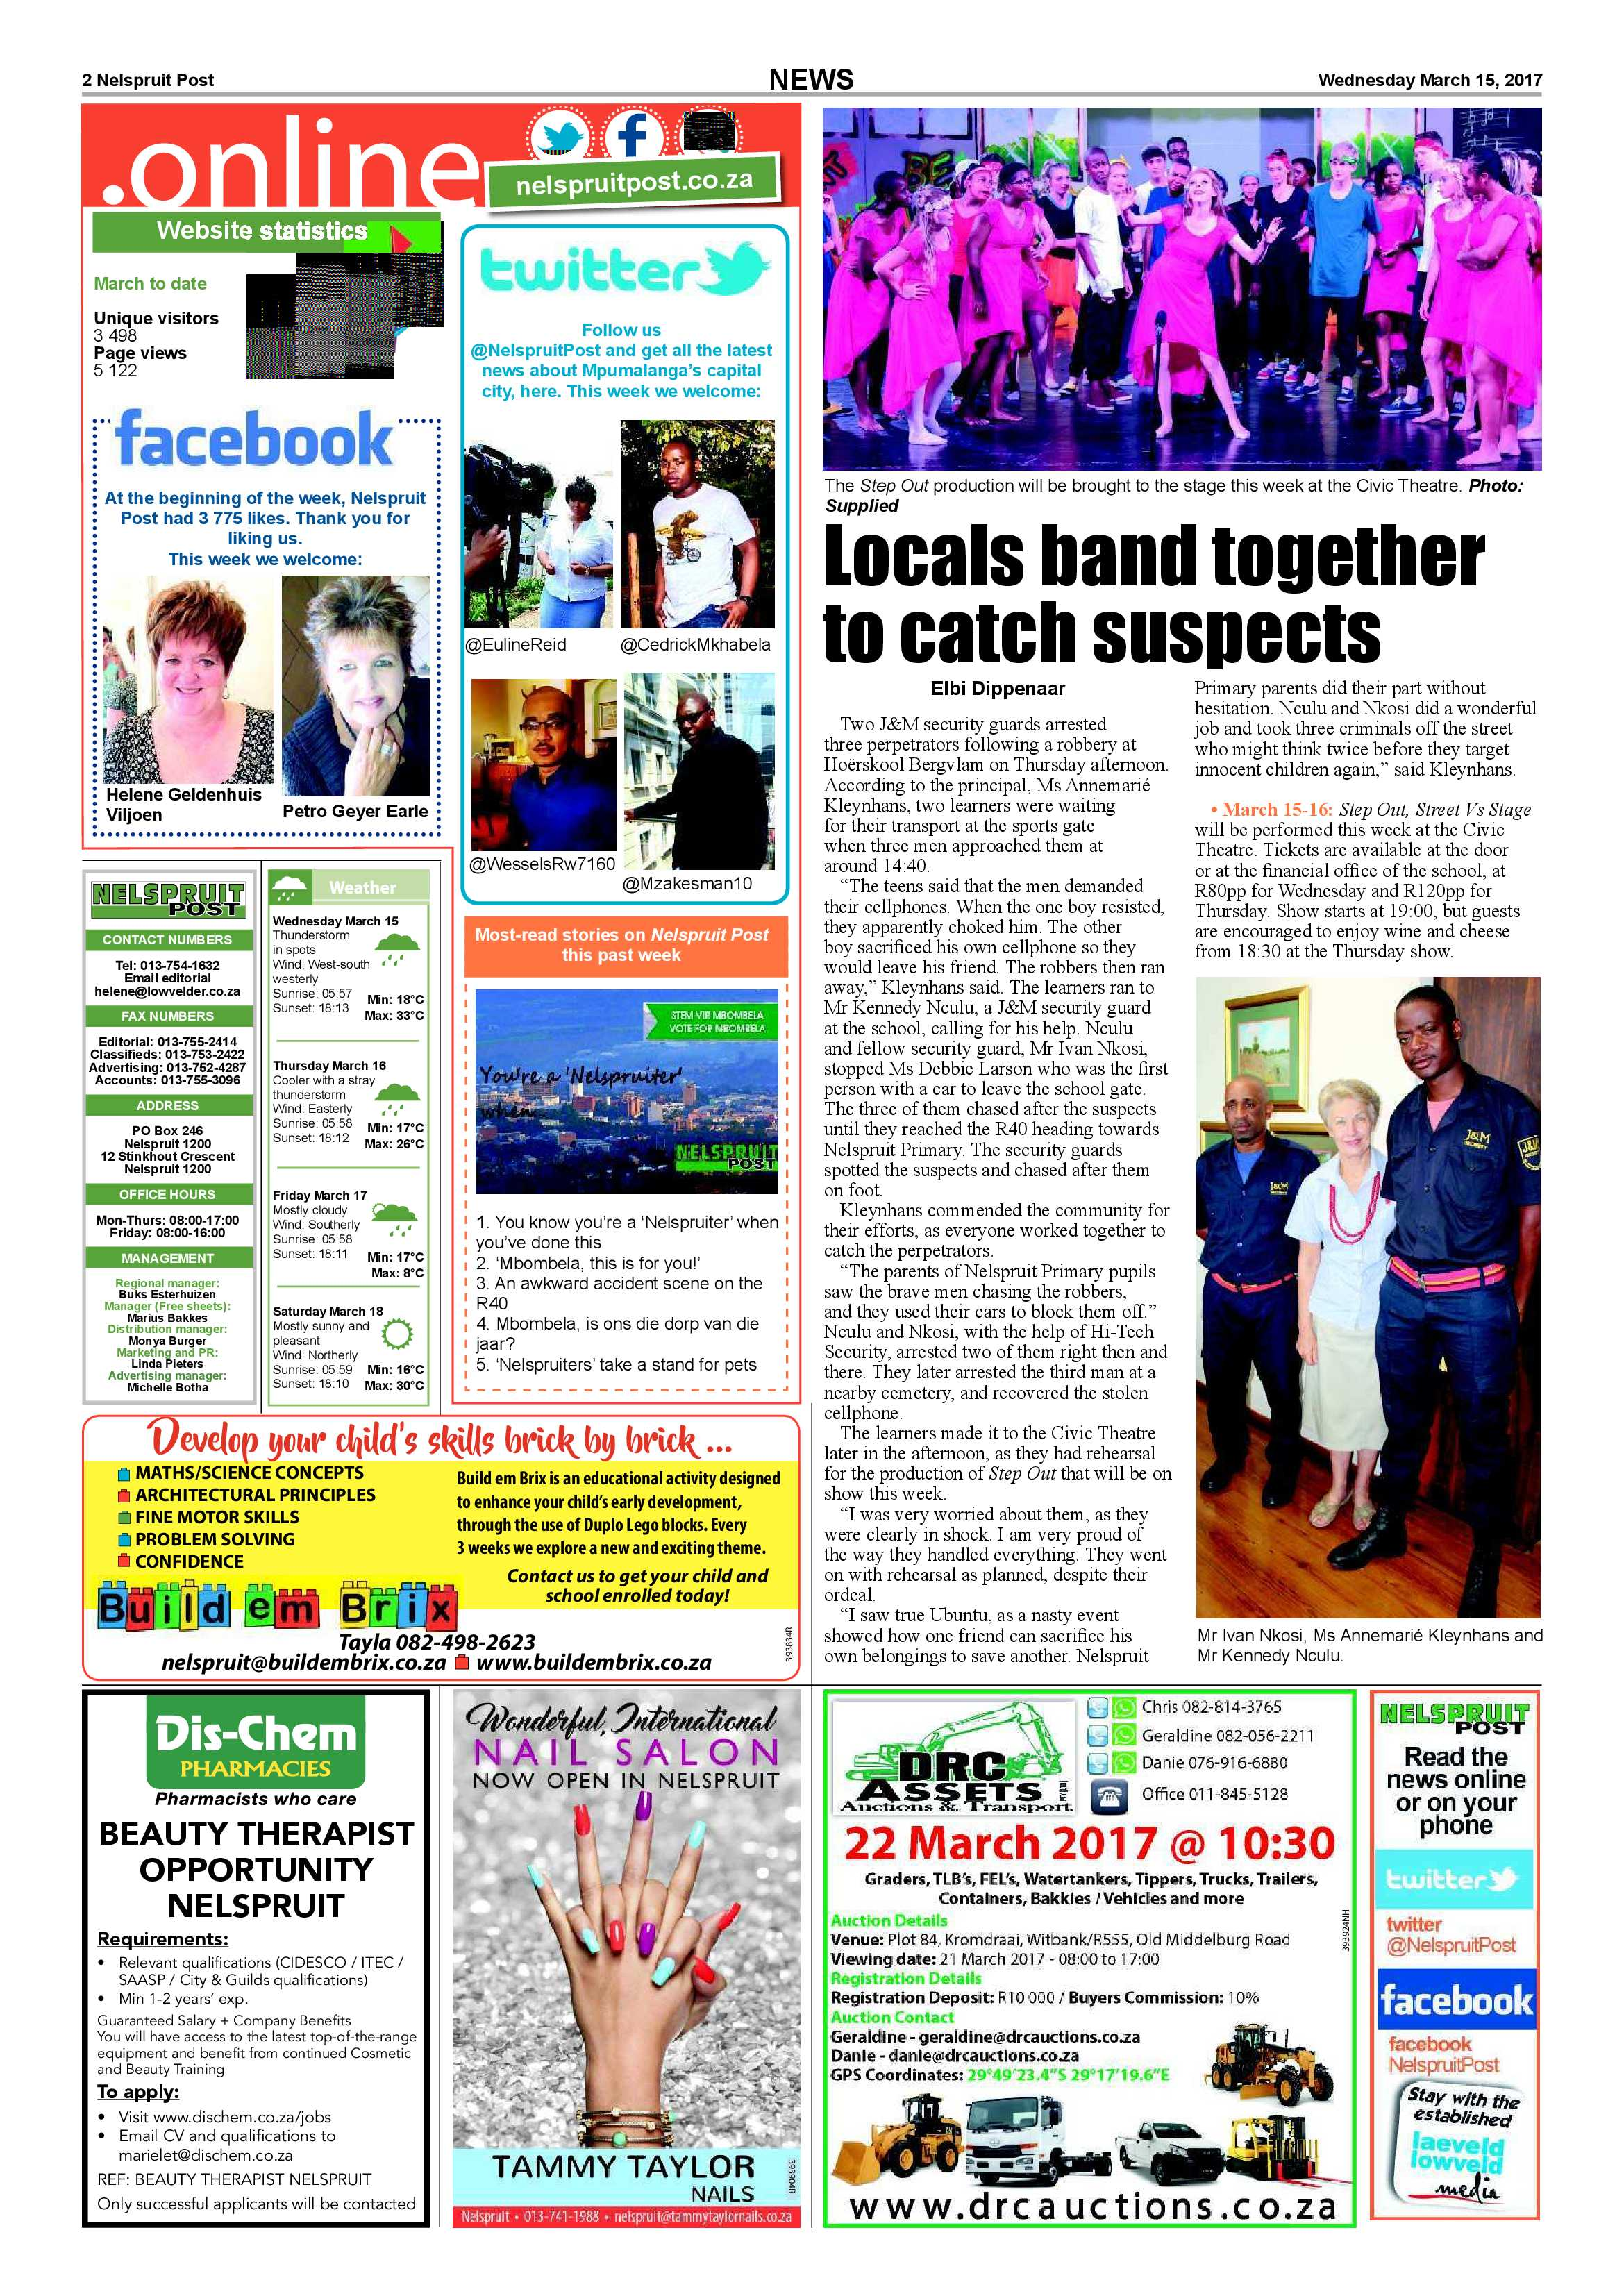 Posts for march page 7 - Nelspruit Post 15 March 2017 Epapers Page 2